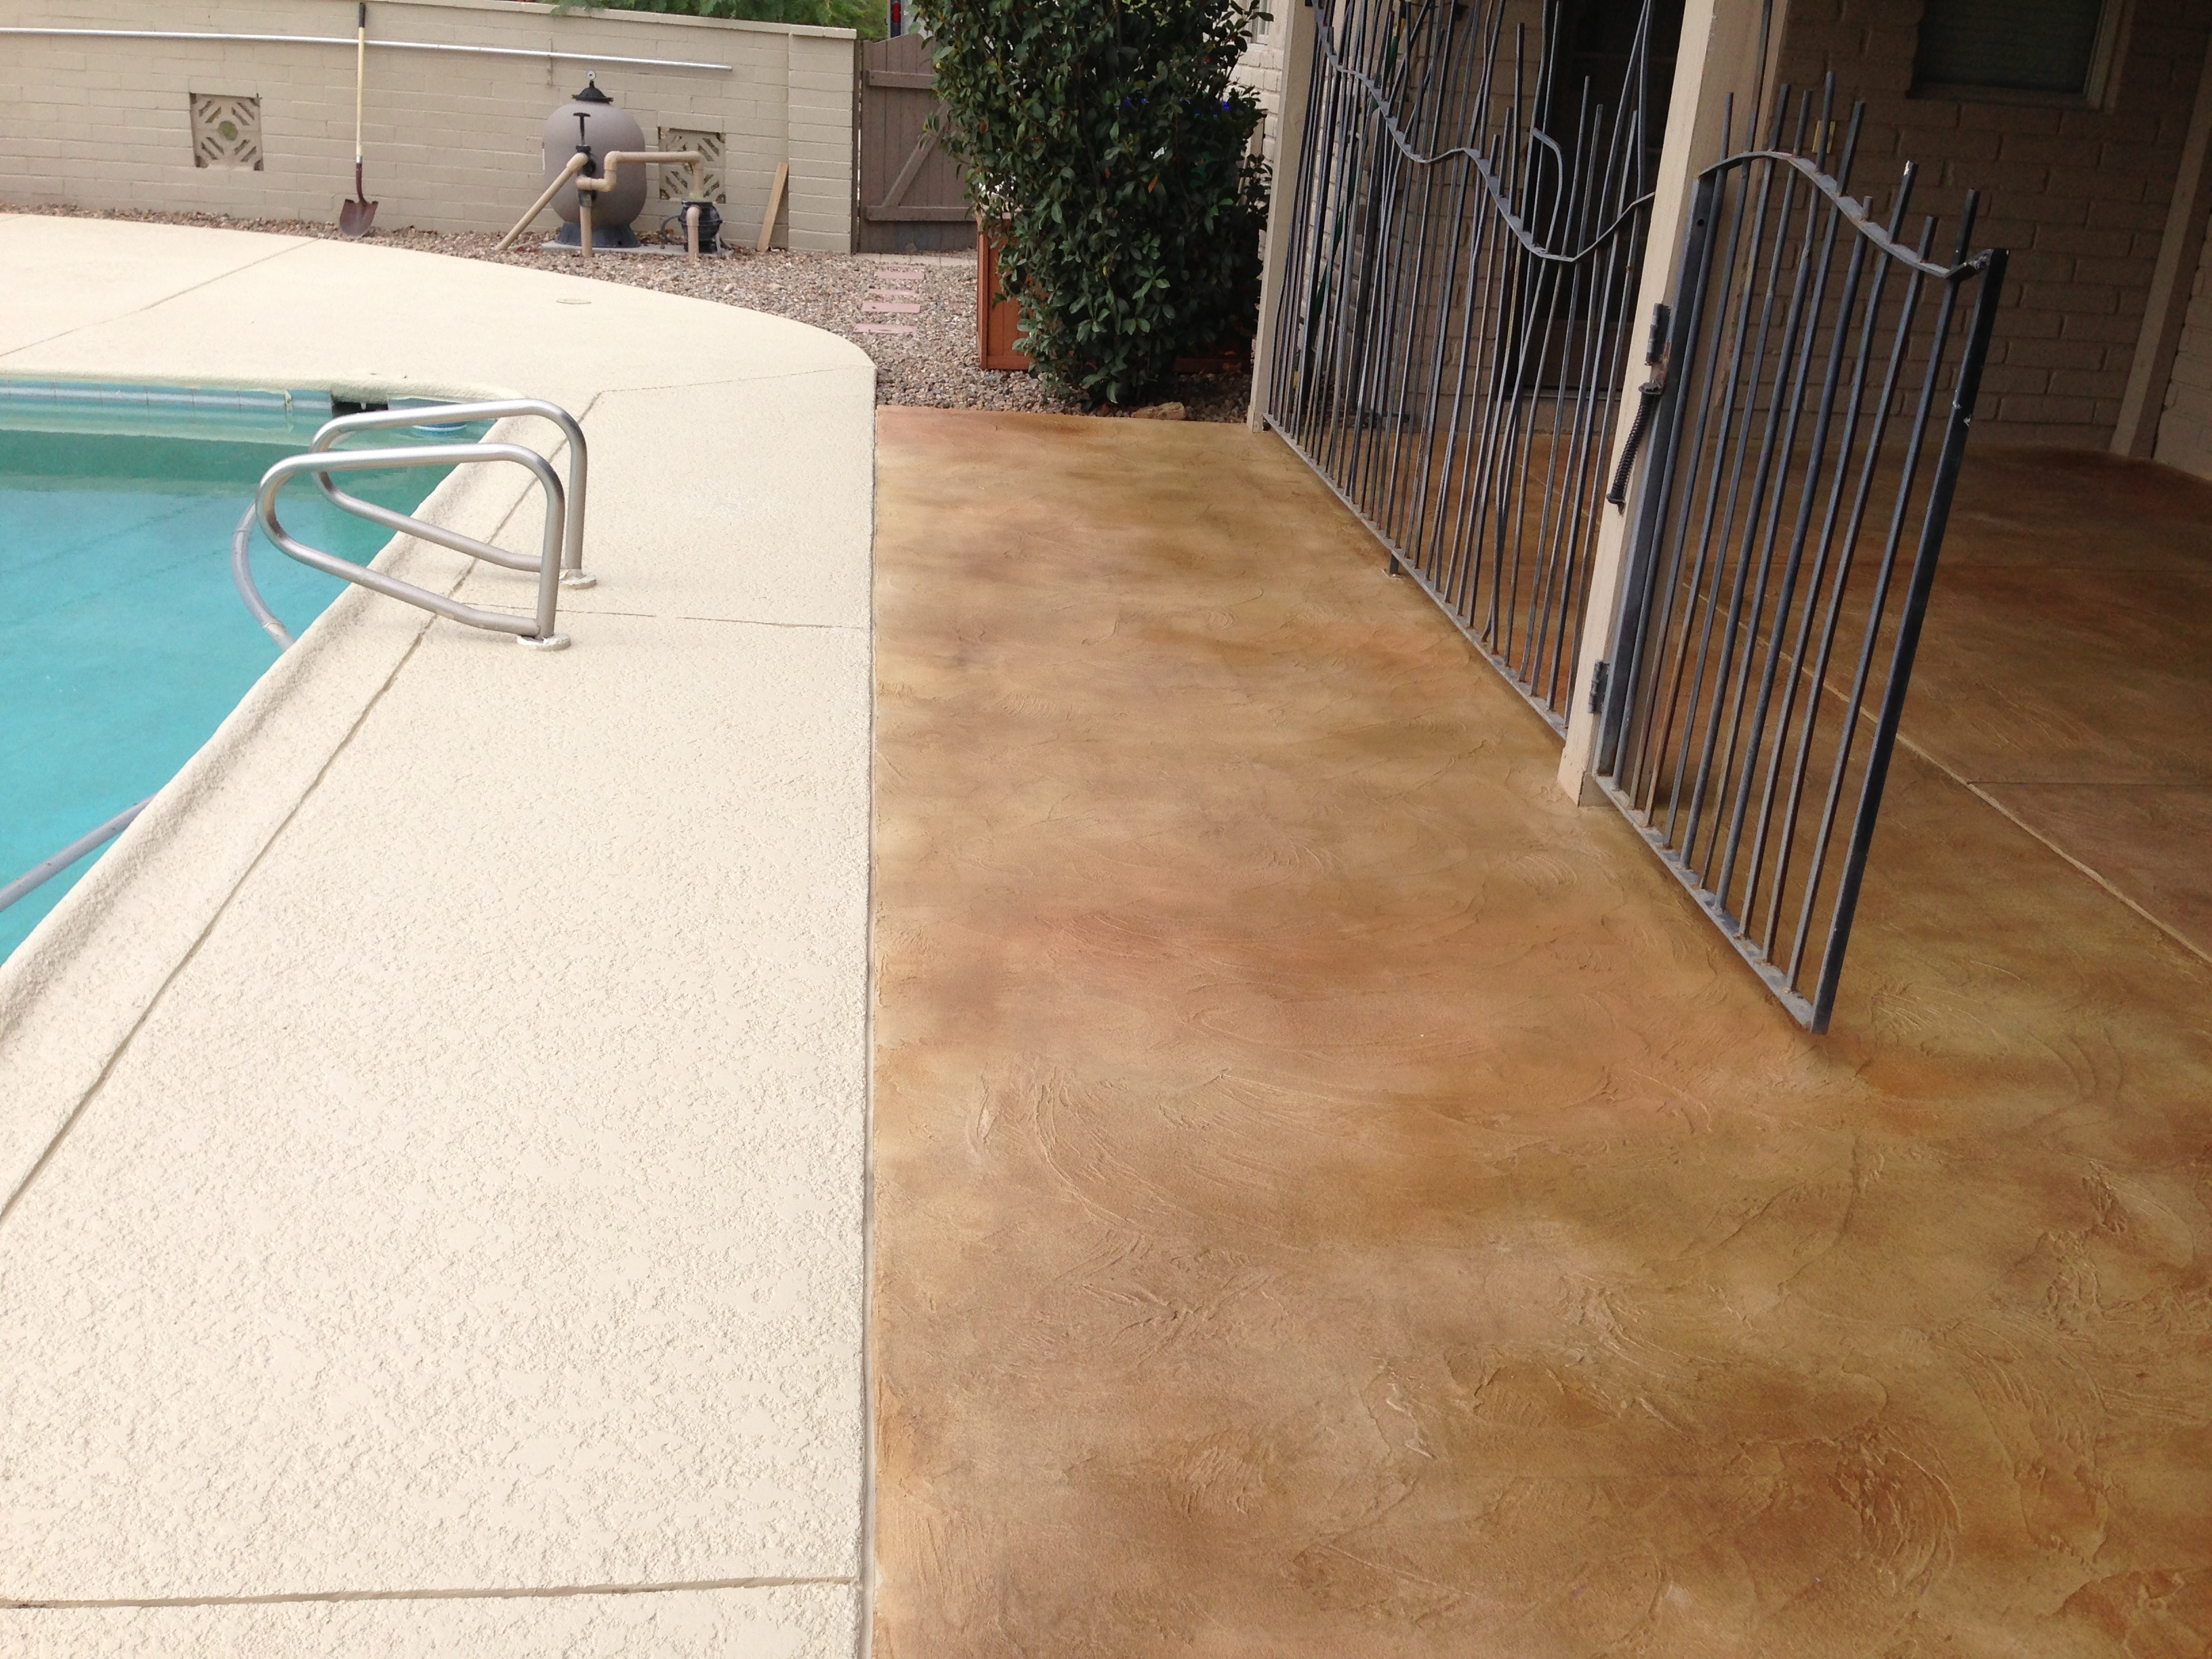 Superb New Stained Concrete Overlay And Pool Deck Addition Gives This Backyard A  Brand New Look